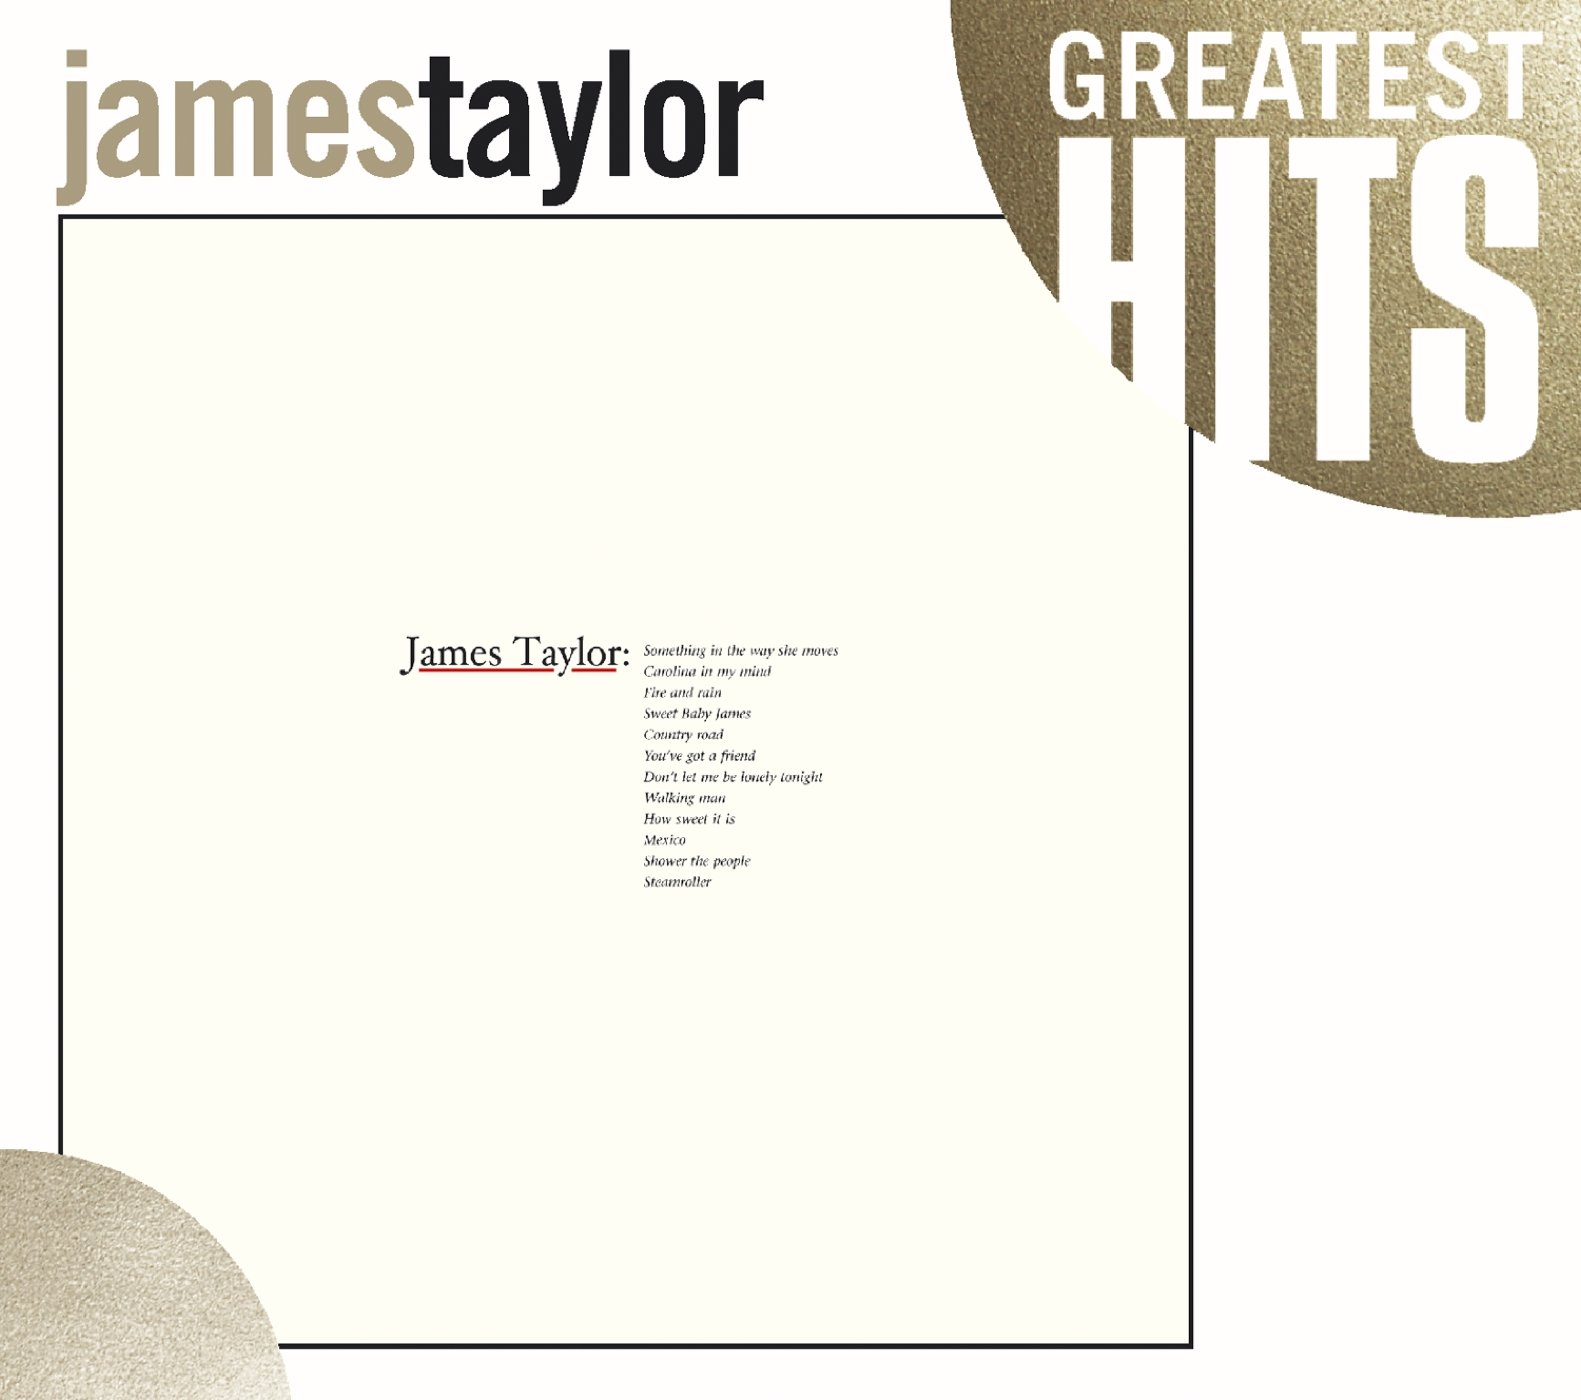 CD : James Taylor - Greatest Hits (Repackaged)